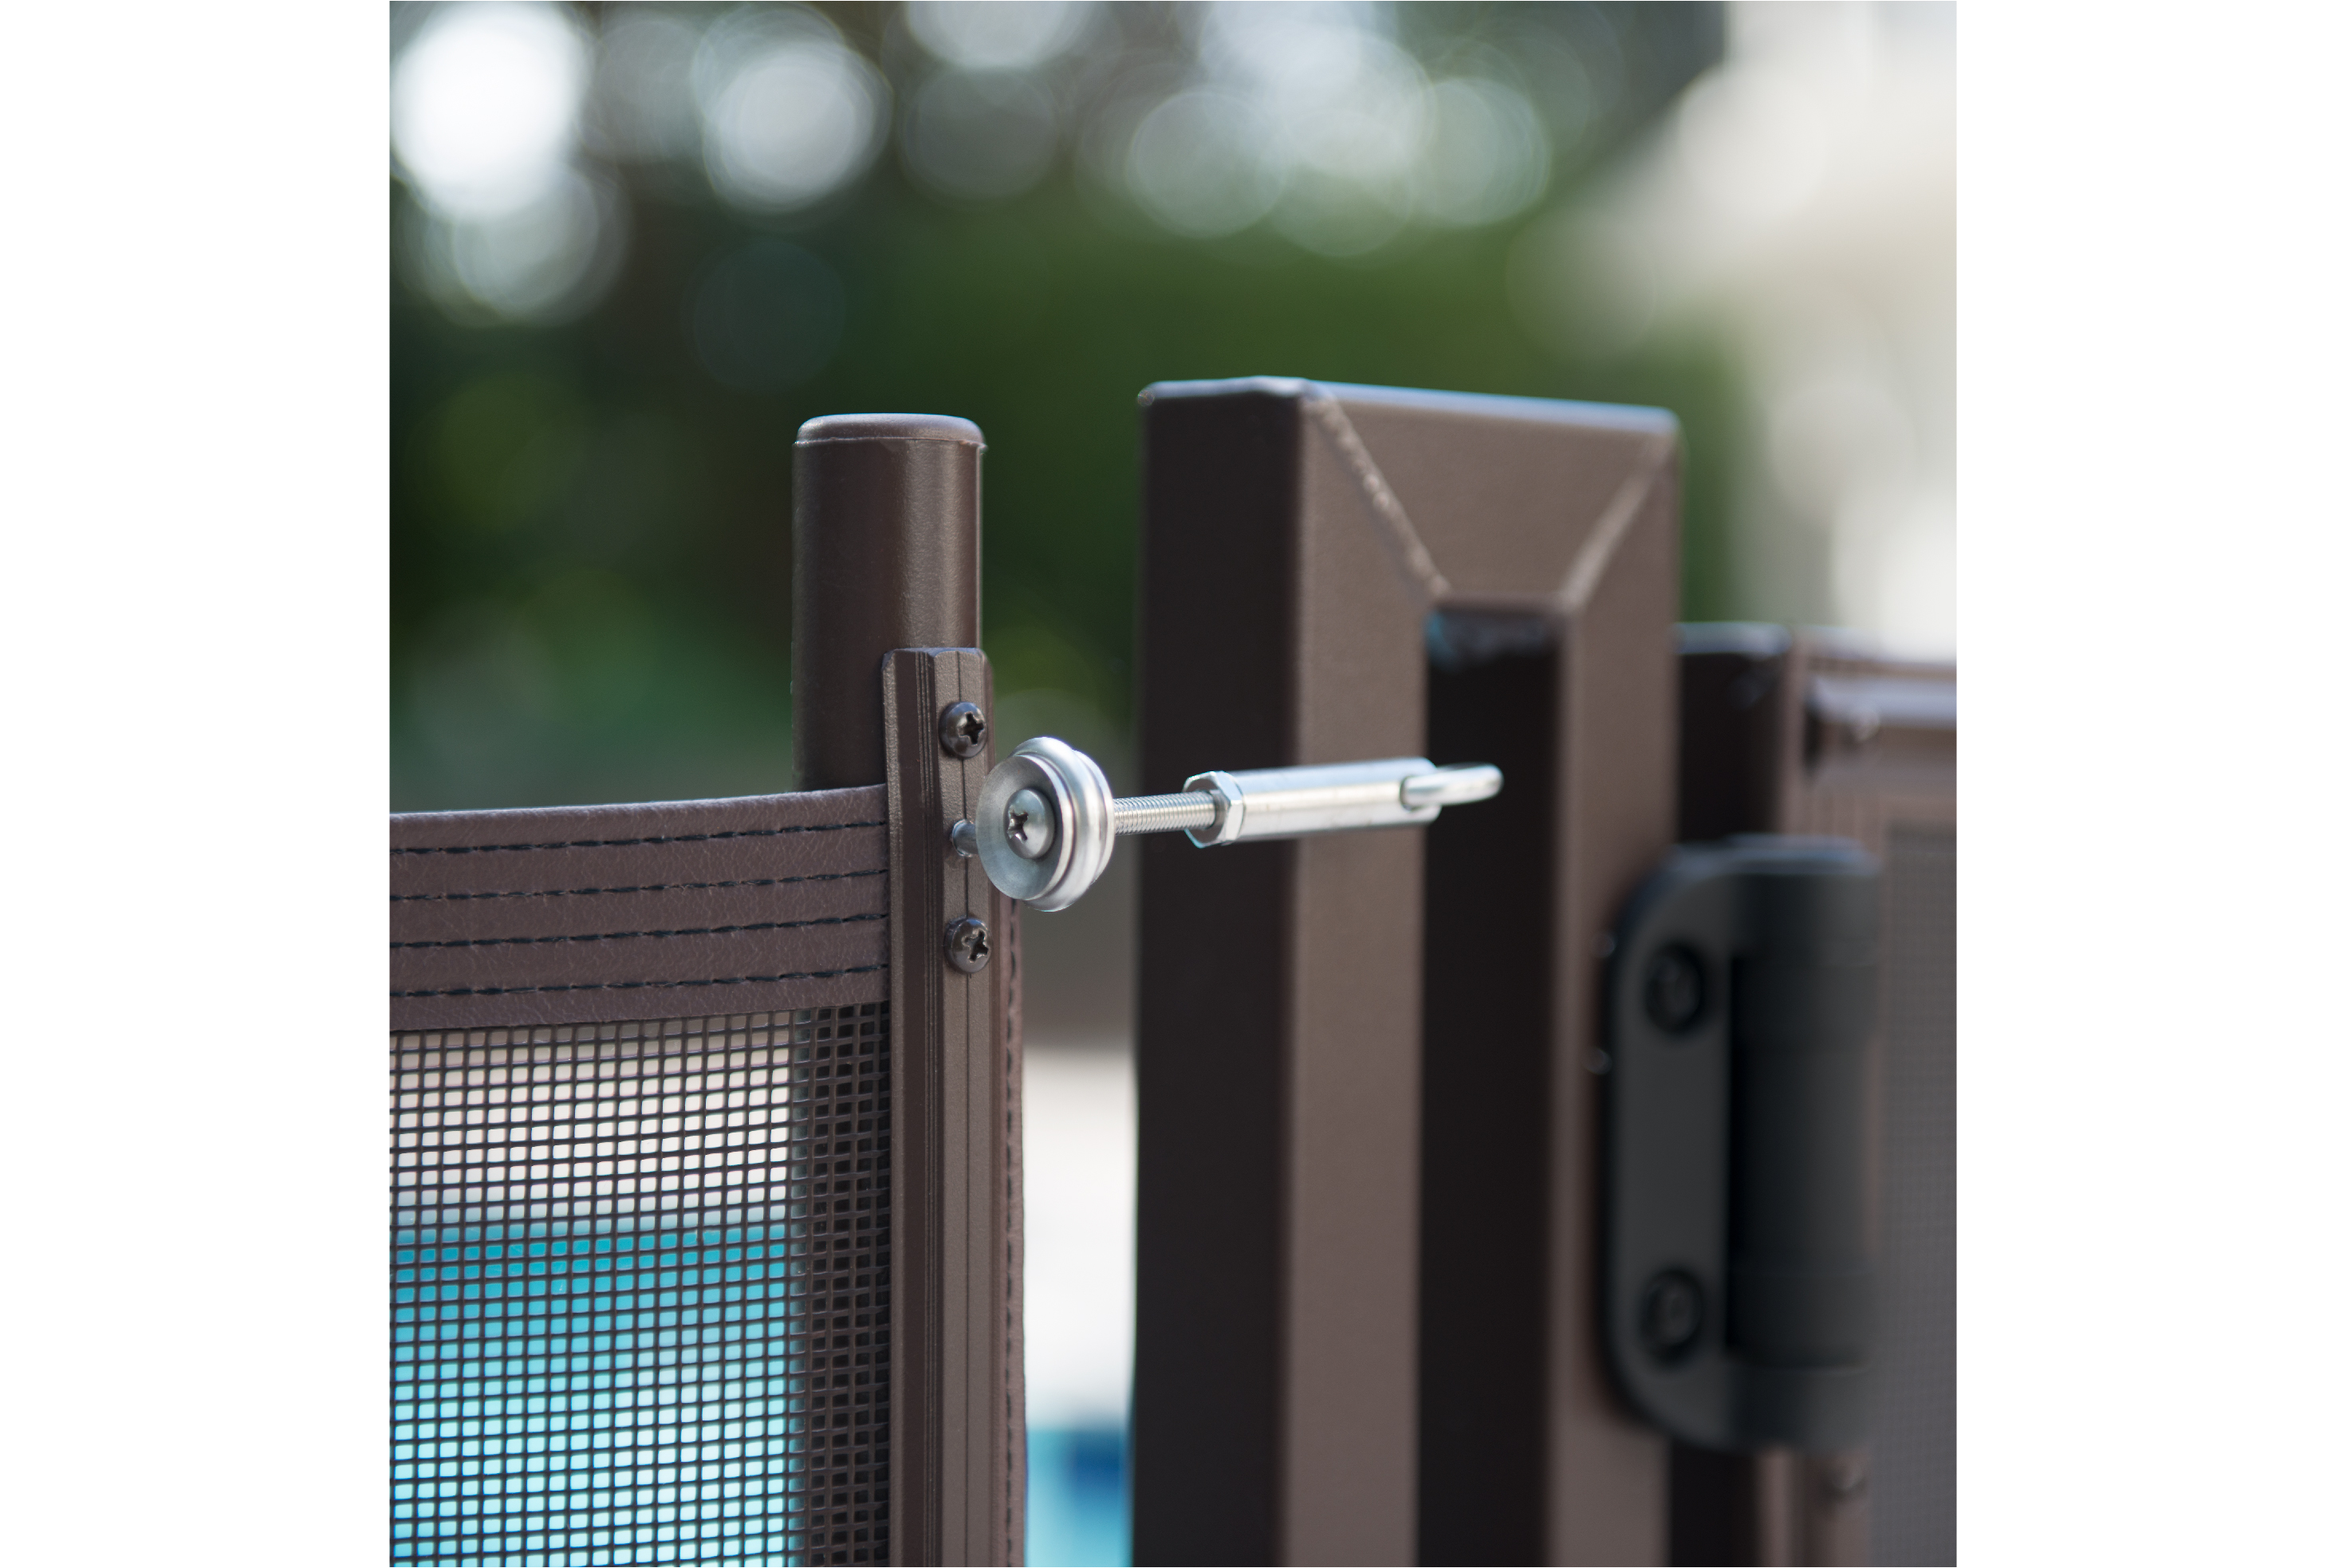 Perma Lock Stainless Steel Safety Latch Pool Fence Diy